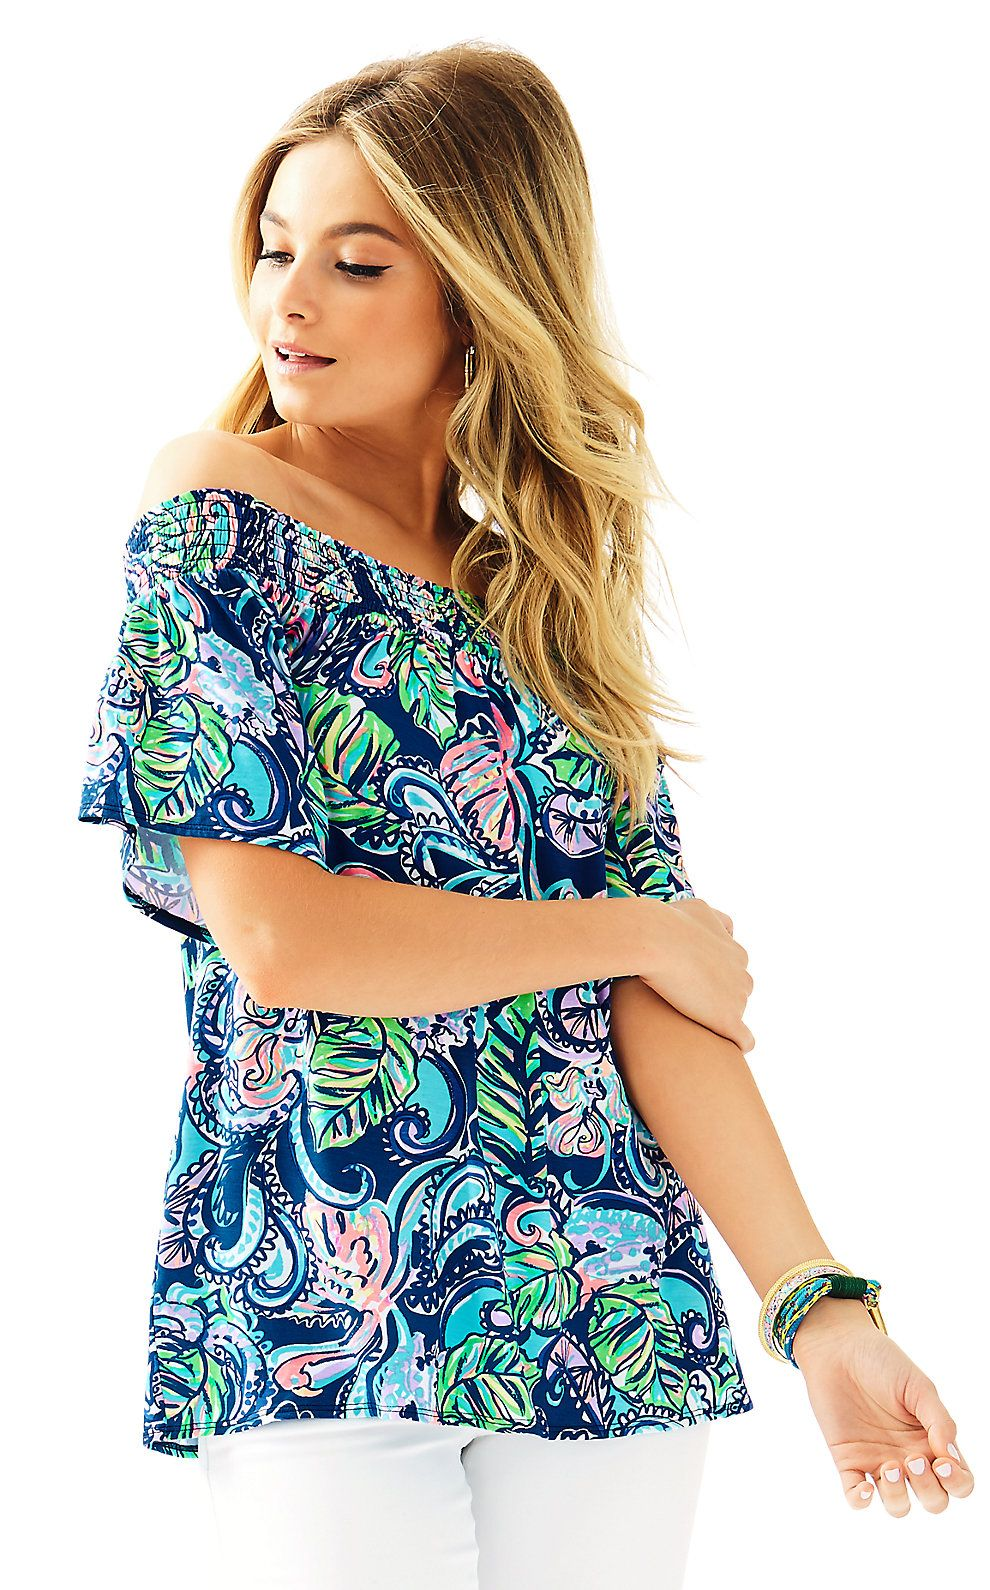 98353ce7629af0 Almeria Top Style Wish, Style Me, Off Shoulder Tops, Lilly Pulitzer, White